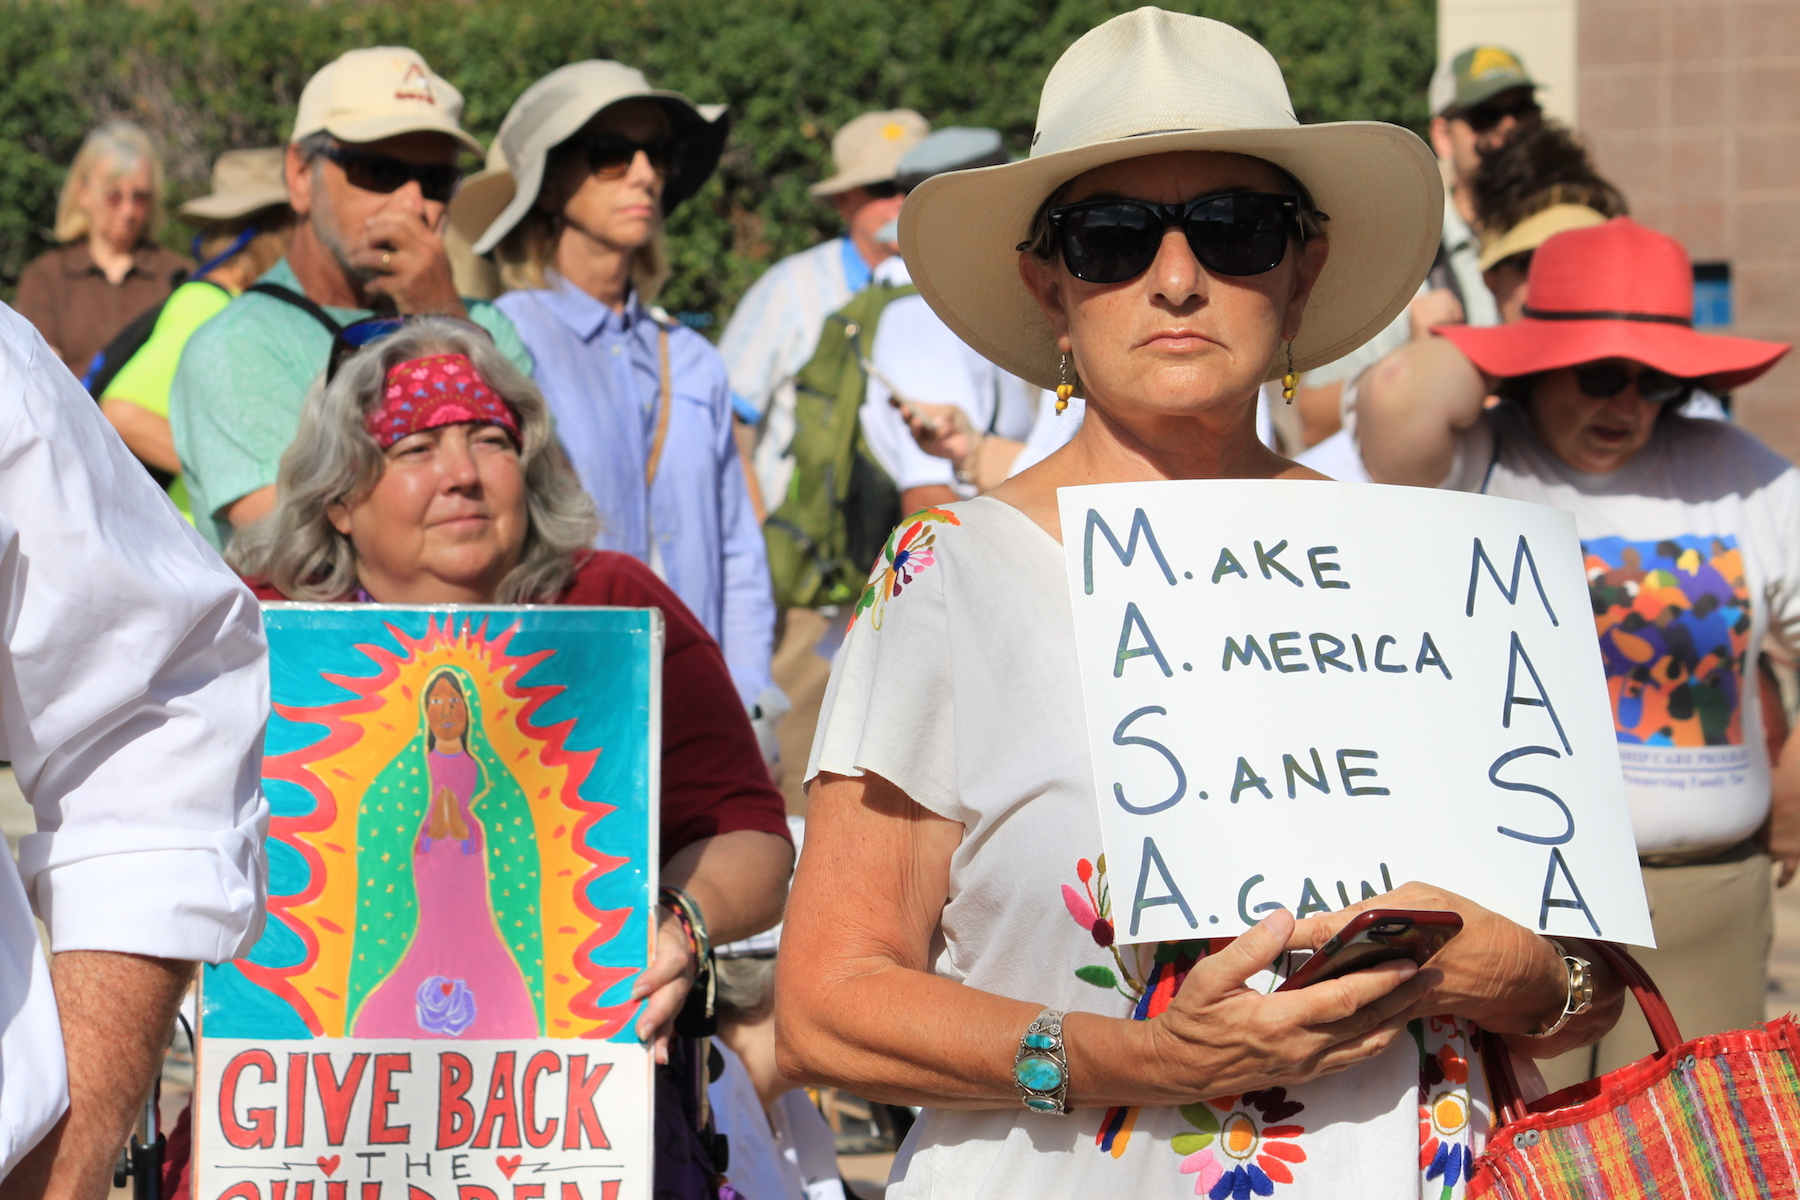 <div class='meta'><div class='origin-logo' data-origin='AP'></div><span class='caption-text' data-credit='AP Photo/Susan Montoya Bryan'>Paula Vallejos of Albuquerque listens to speakers during a protest on Civic Plaza in downtown Albuquerque, N.M., on Saturday, June 30, 2018.</span></div>